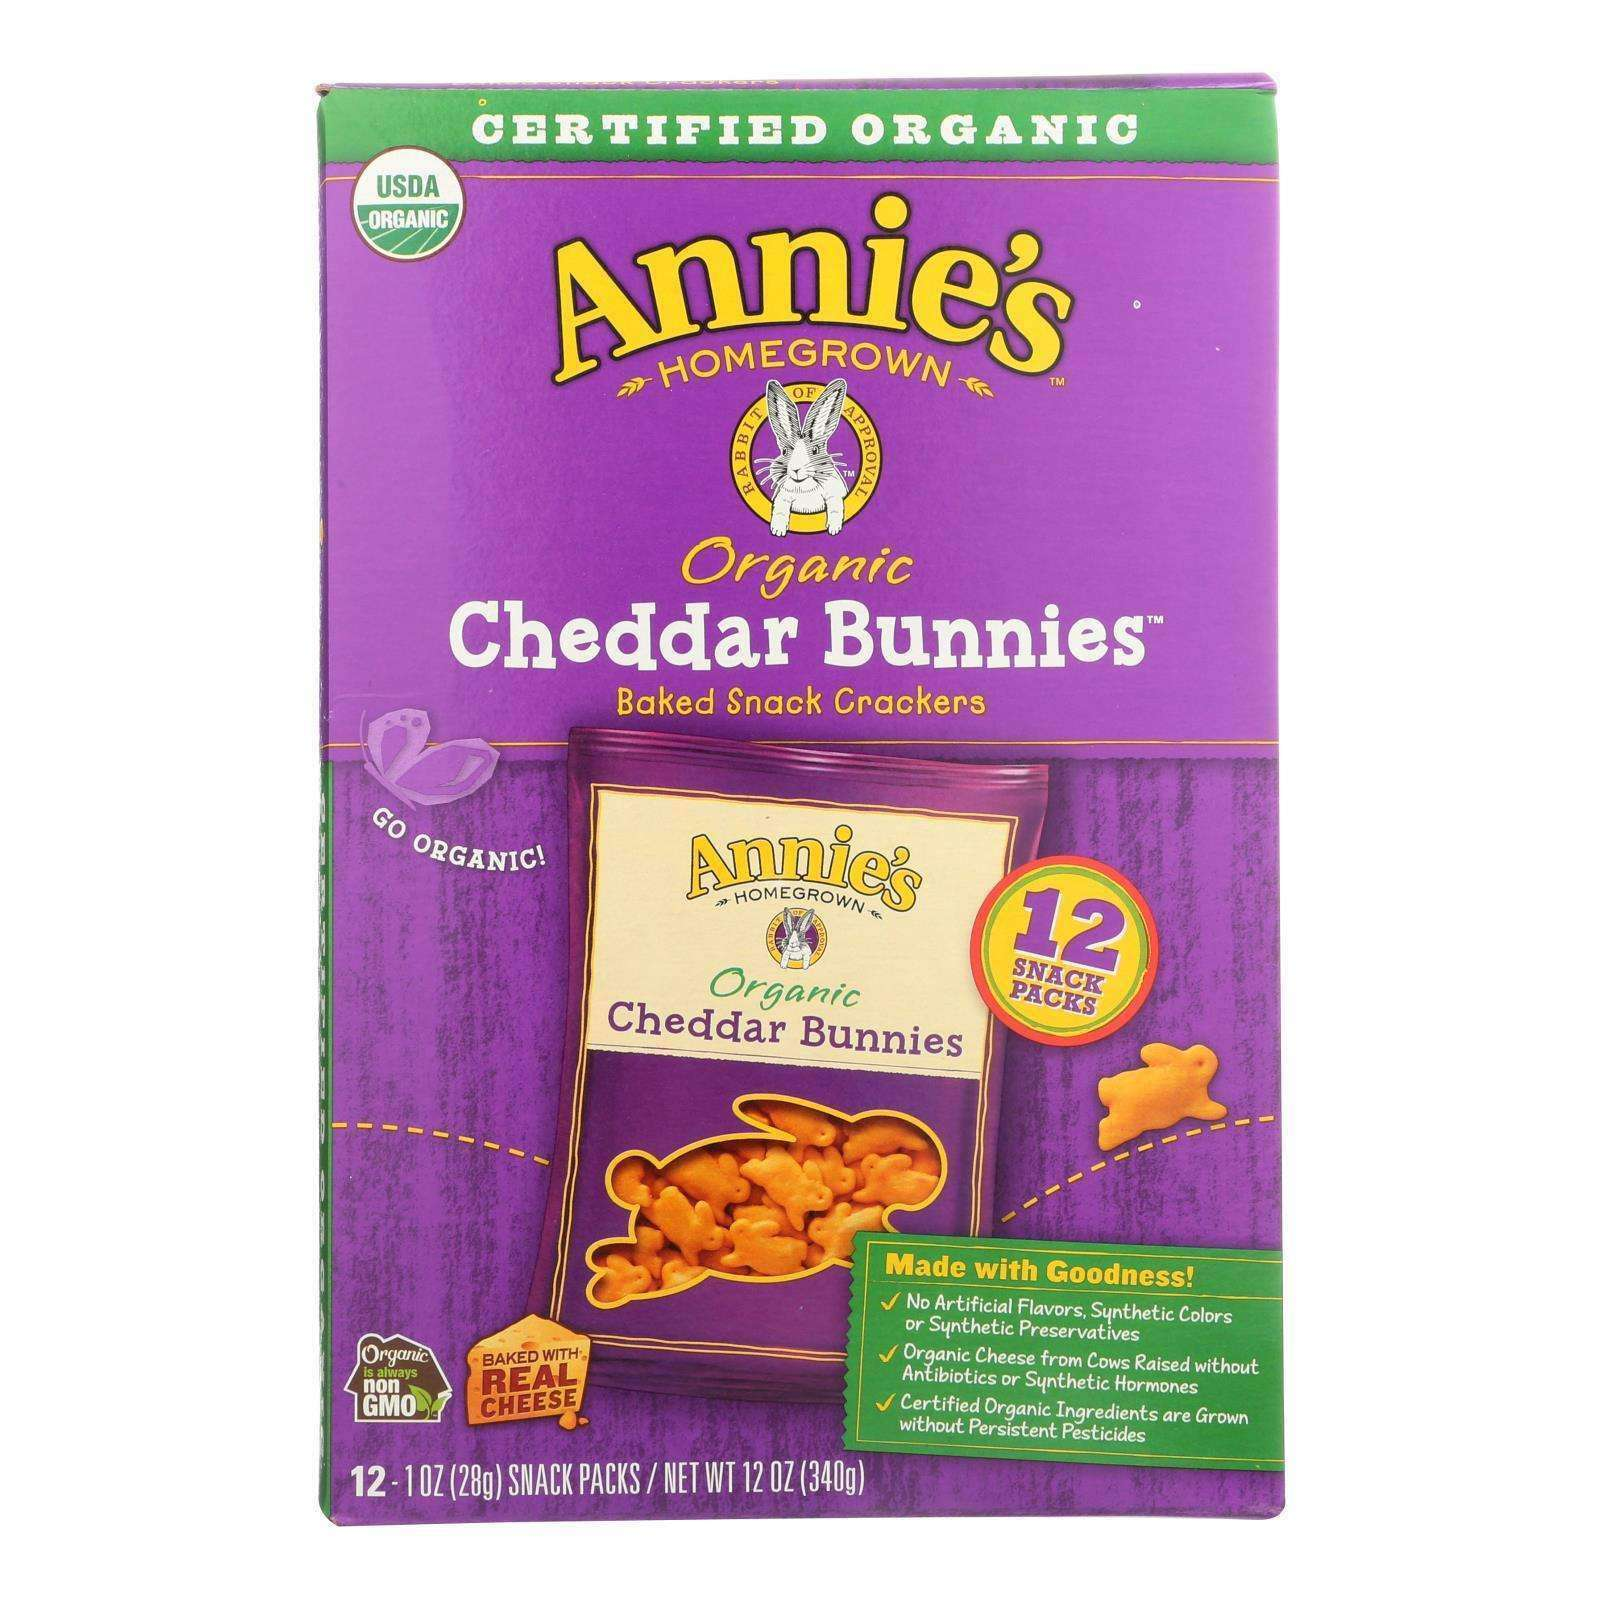 Annie's Homegrown Organic Bunny Cracker Snack Pack - Cheddar - Case Of 4 - 12-1 Oz - BeeGreen